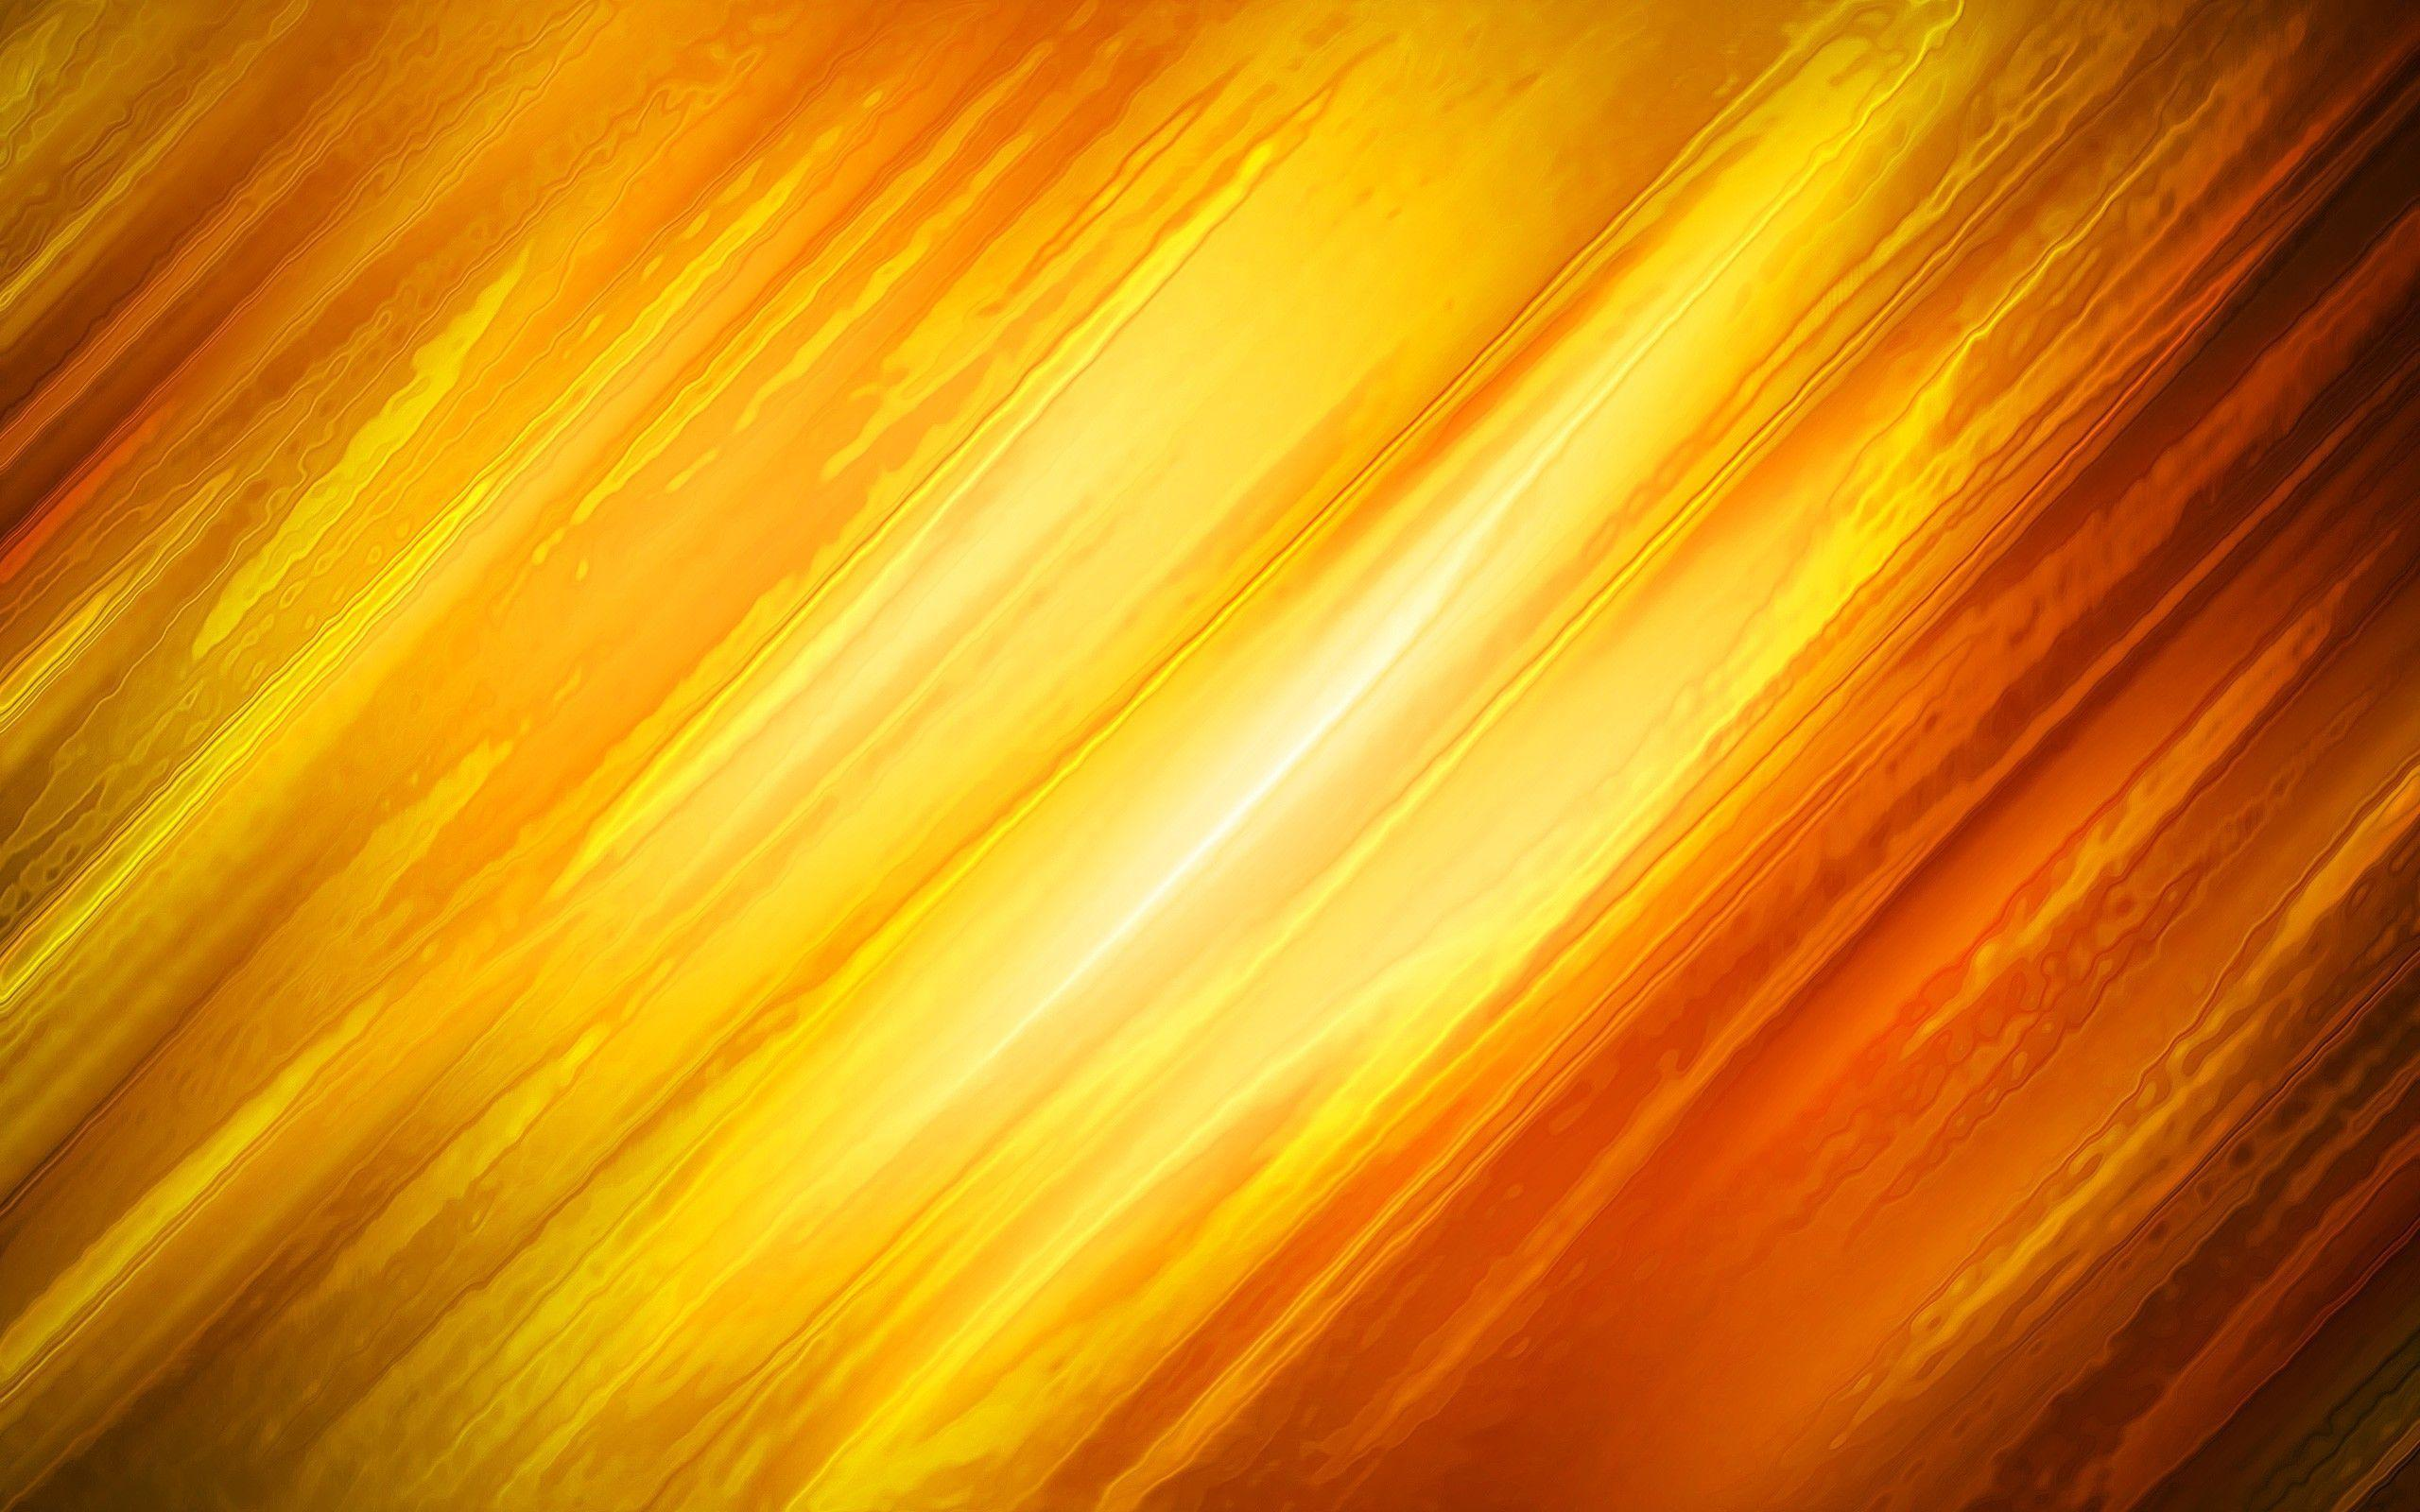 Cool orange backgrounds wallpaper cave - Free wallpaper 1280x720 ...